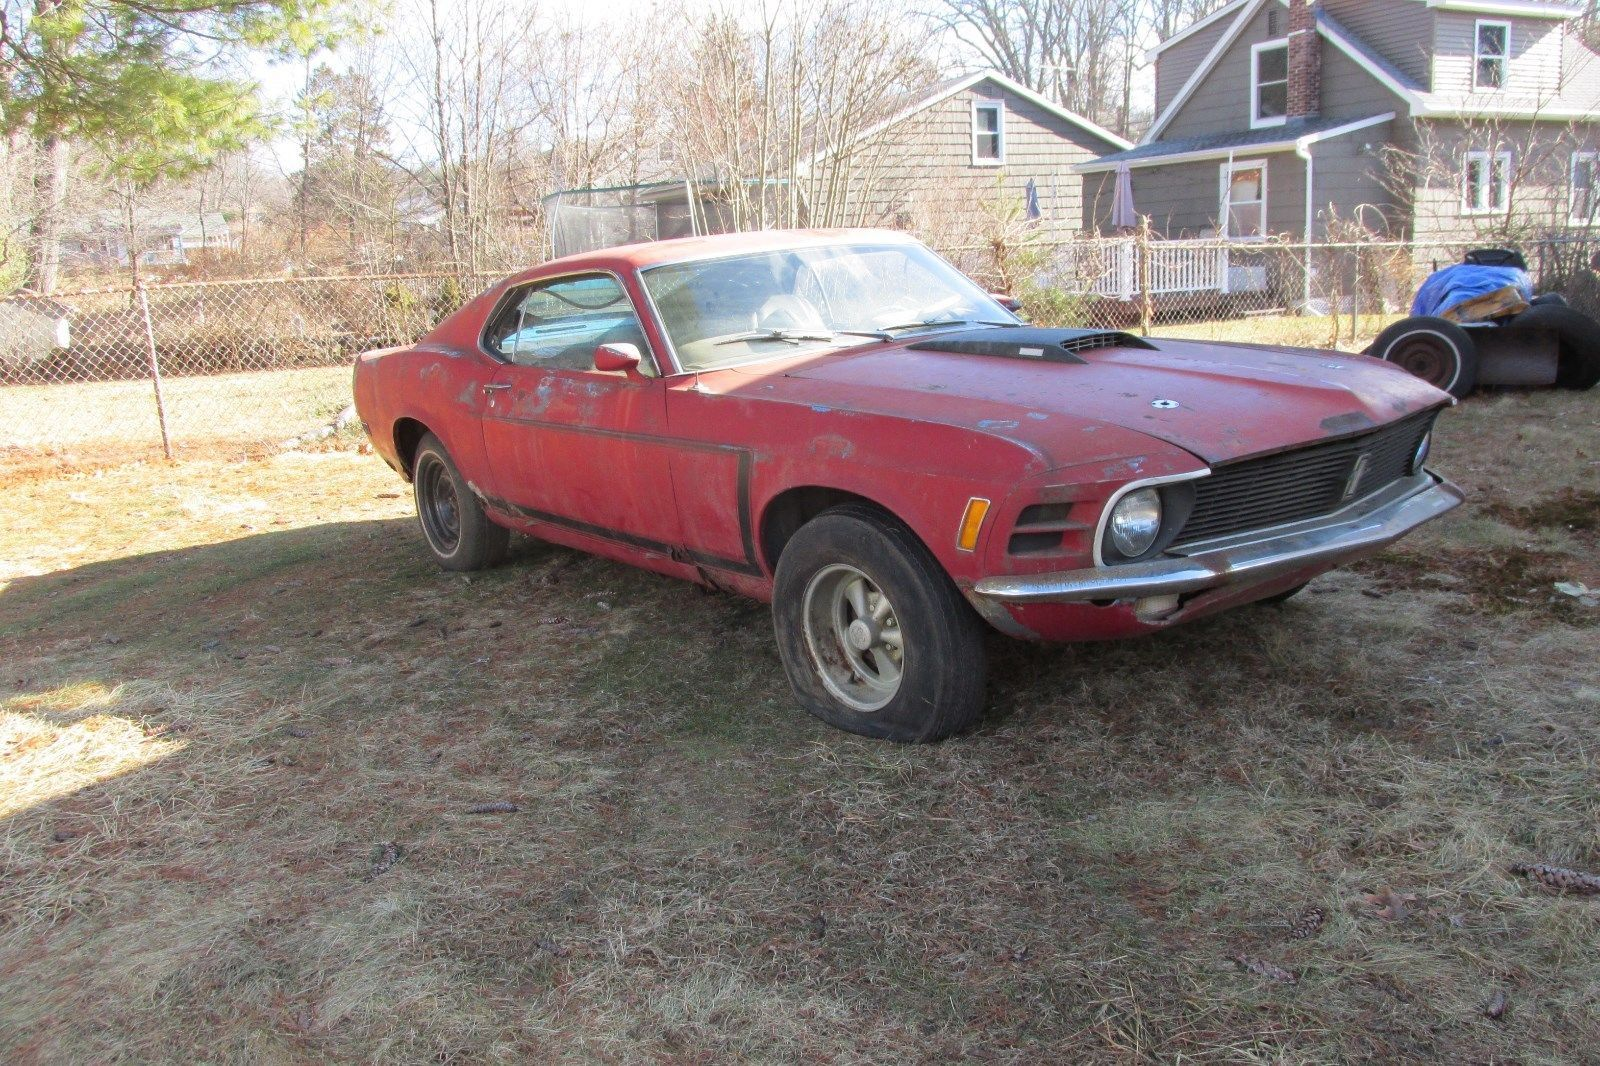 Nice Great 1970 Ford Mustang 1970 MUSTANG FASTBACK 302, AT BARN FIND ...